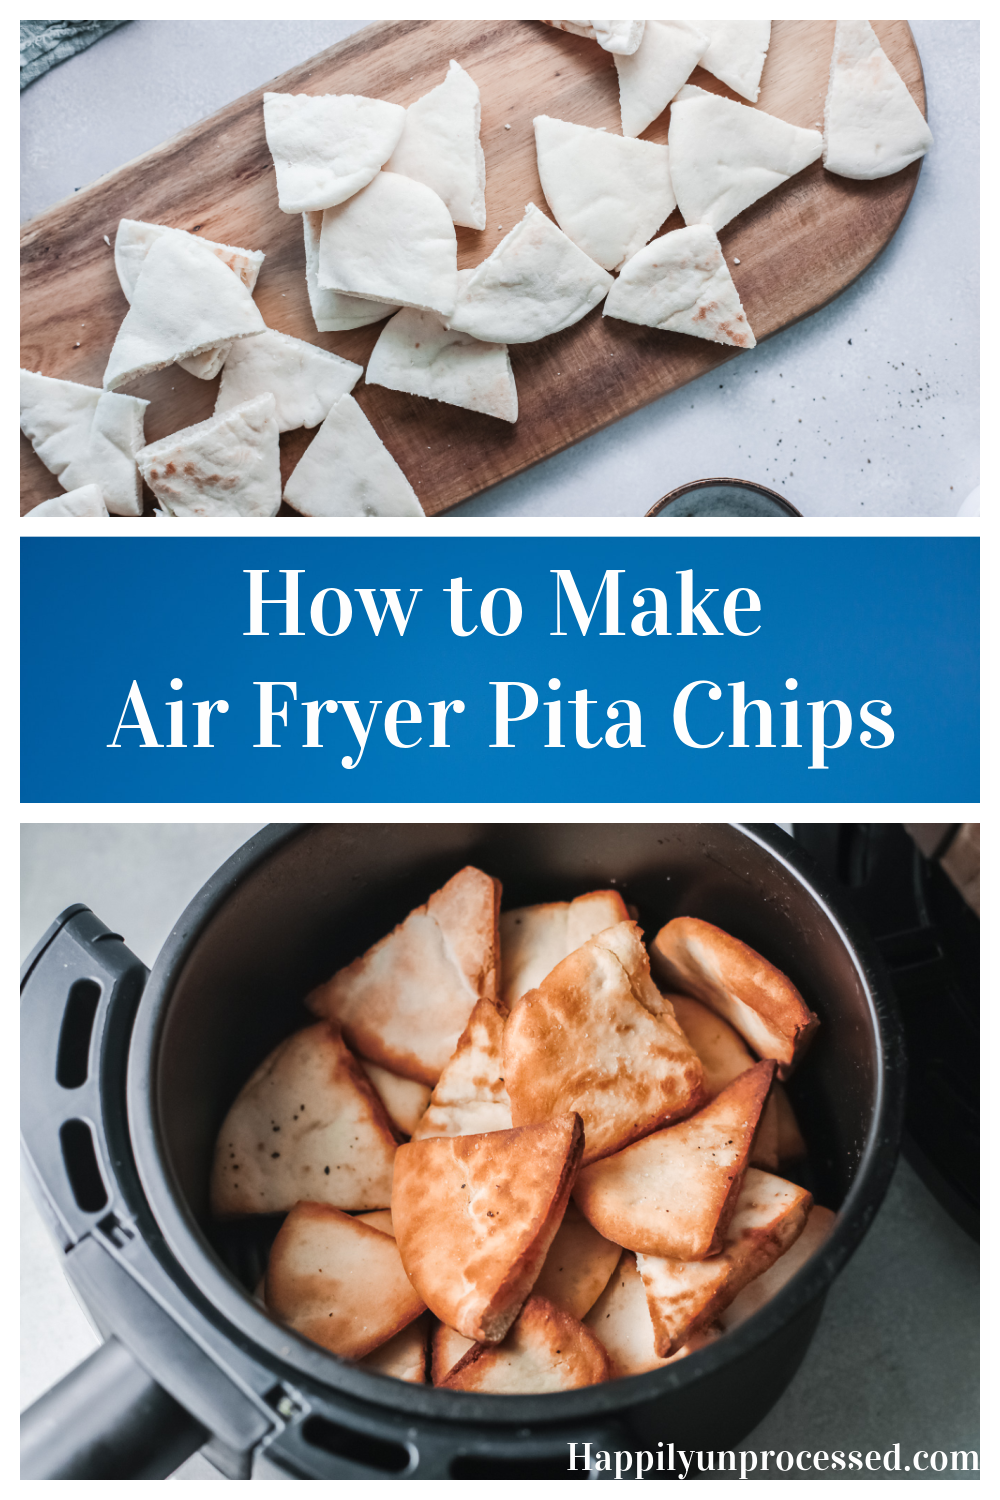 Crispy air fryer pita chips are much healthier than store bought - Air Fryer Pita Chips